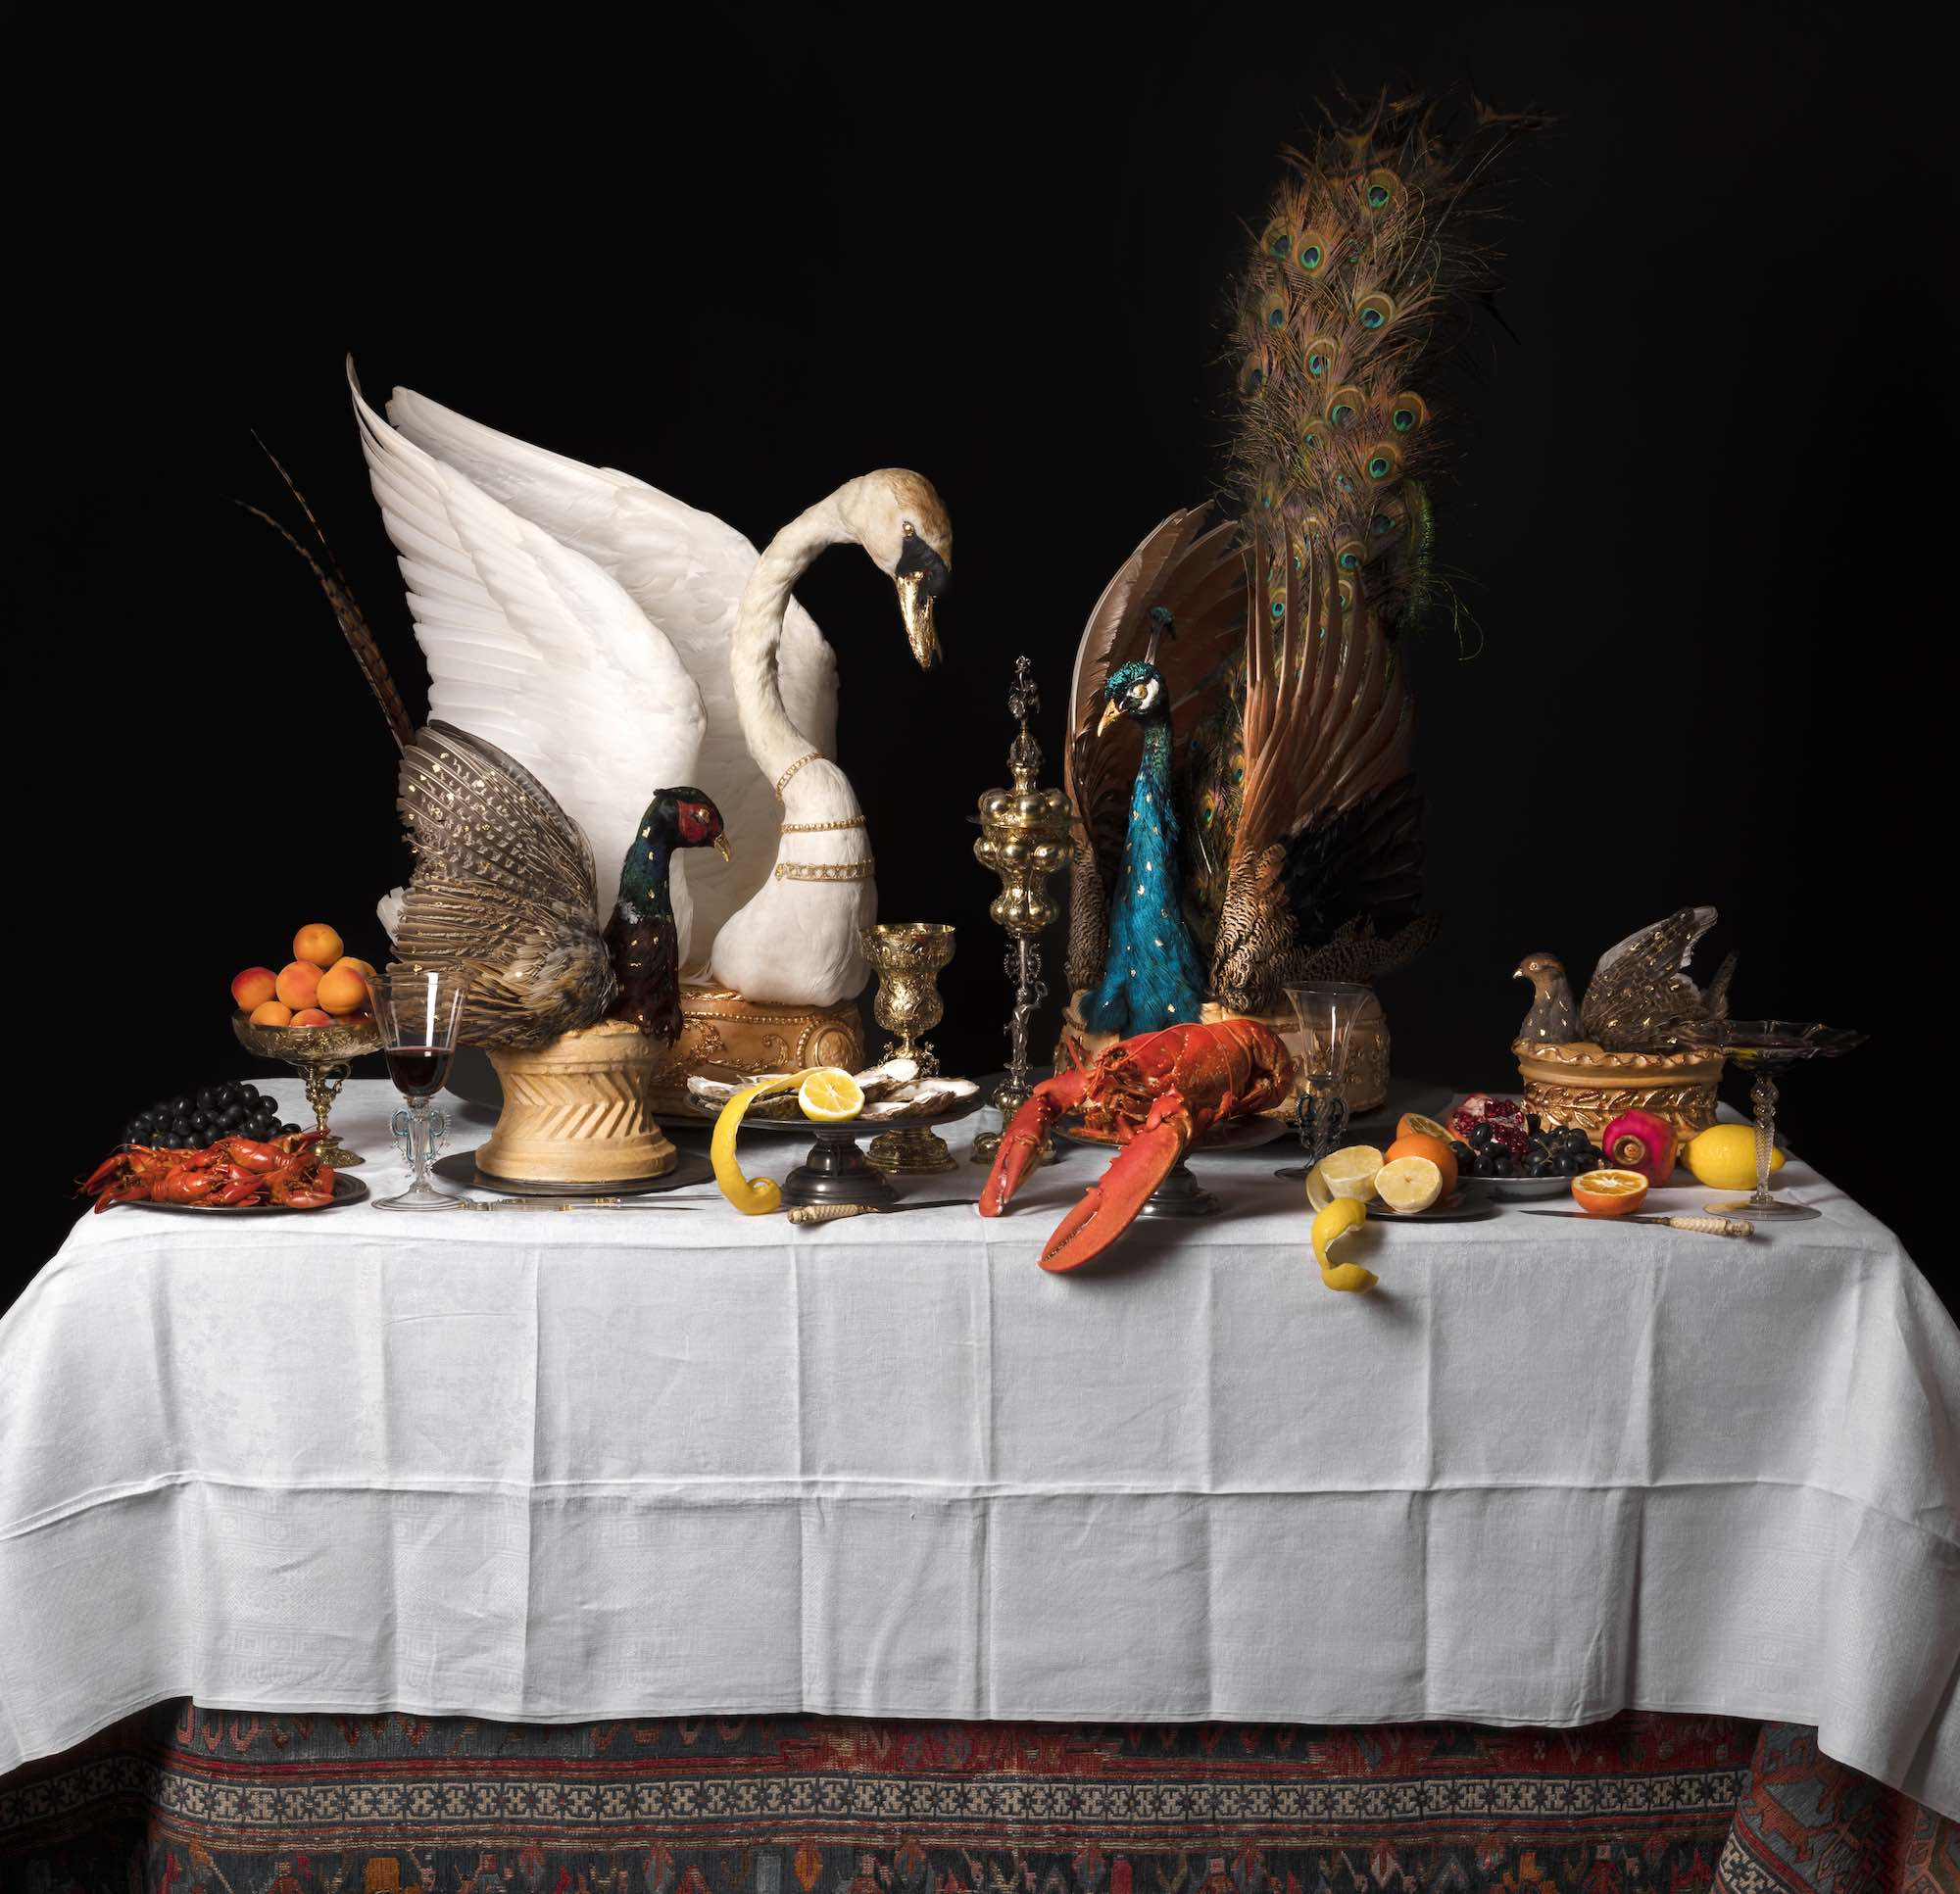 A view of a Baroque feasting table.